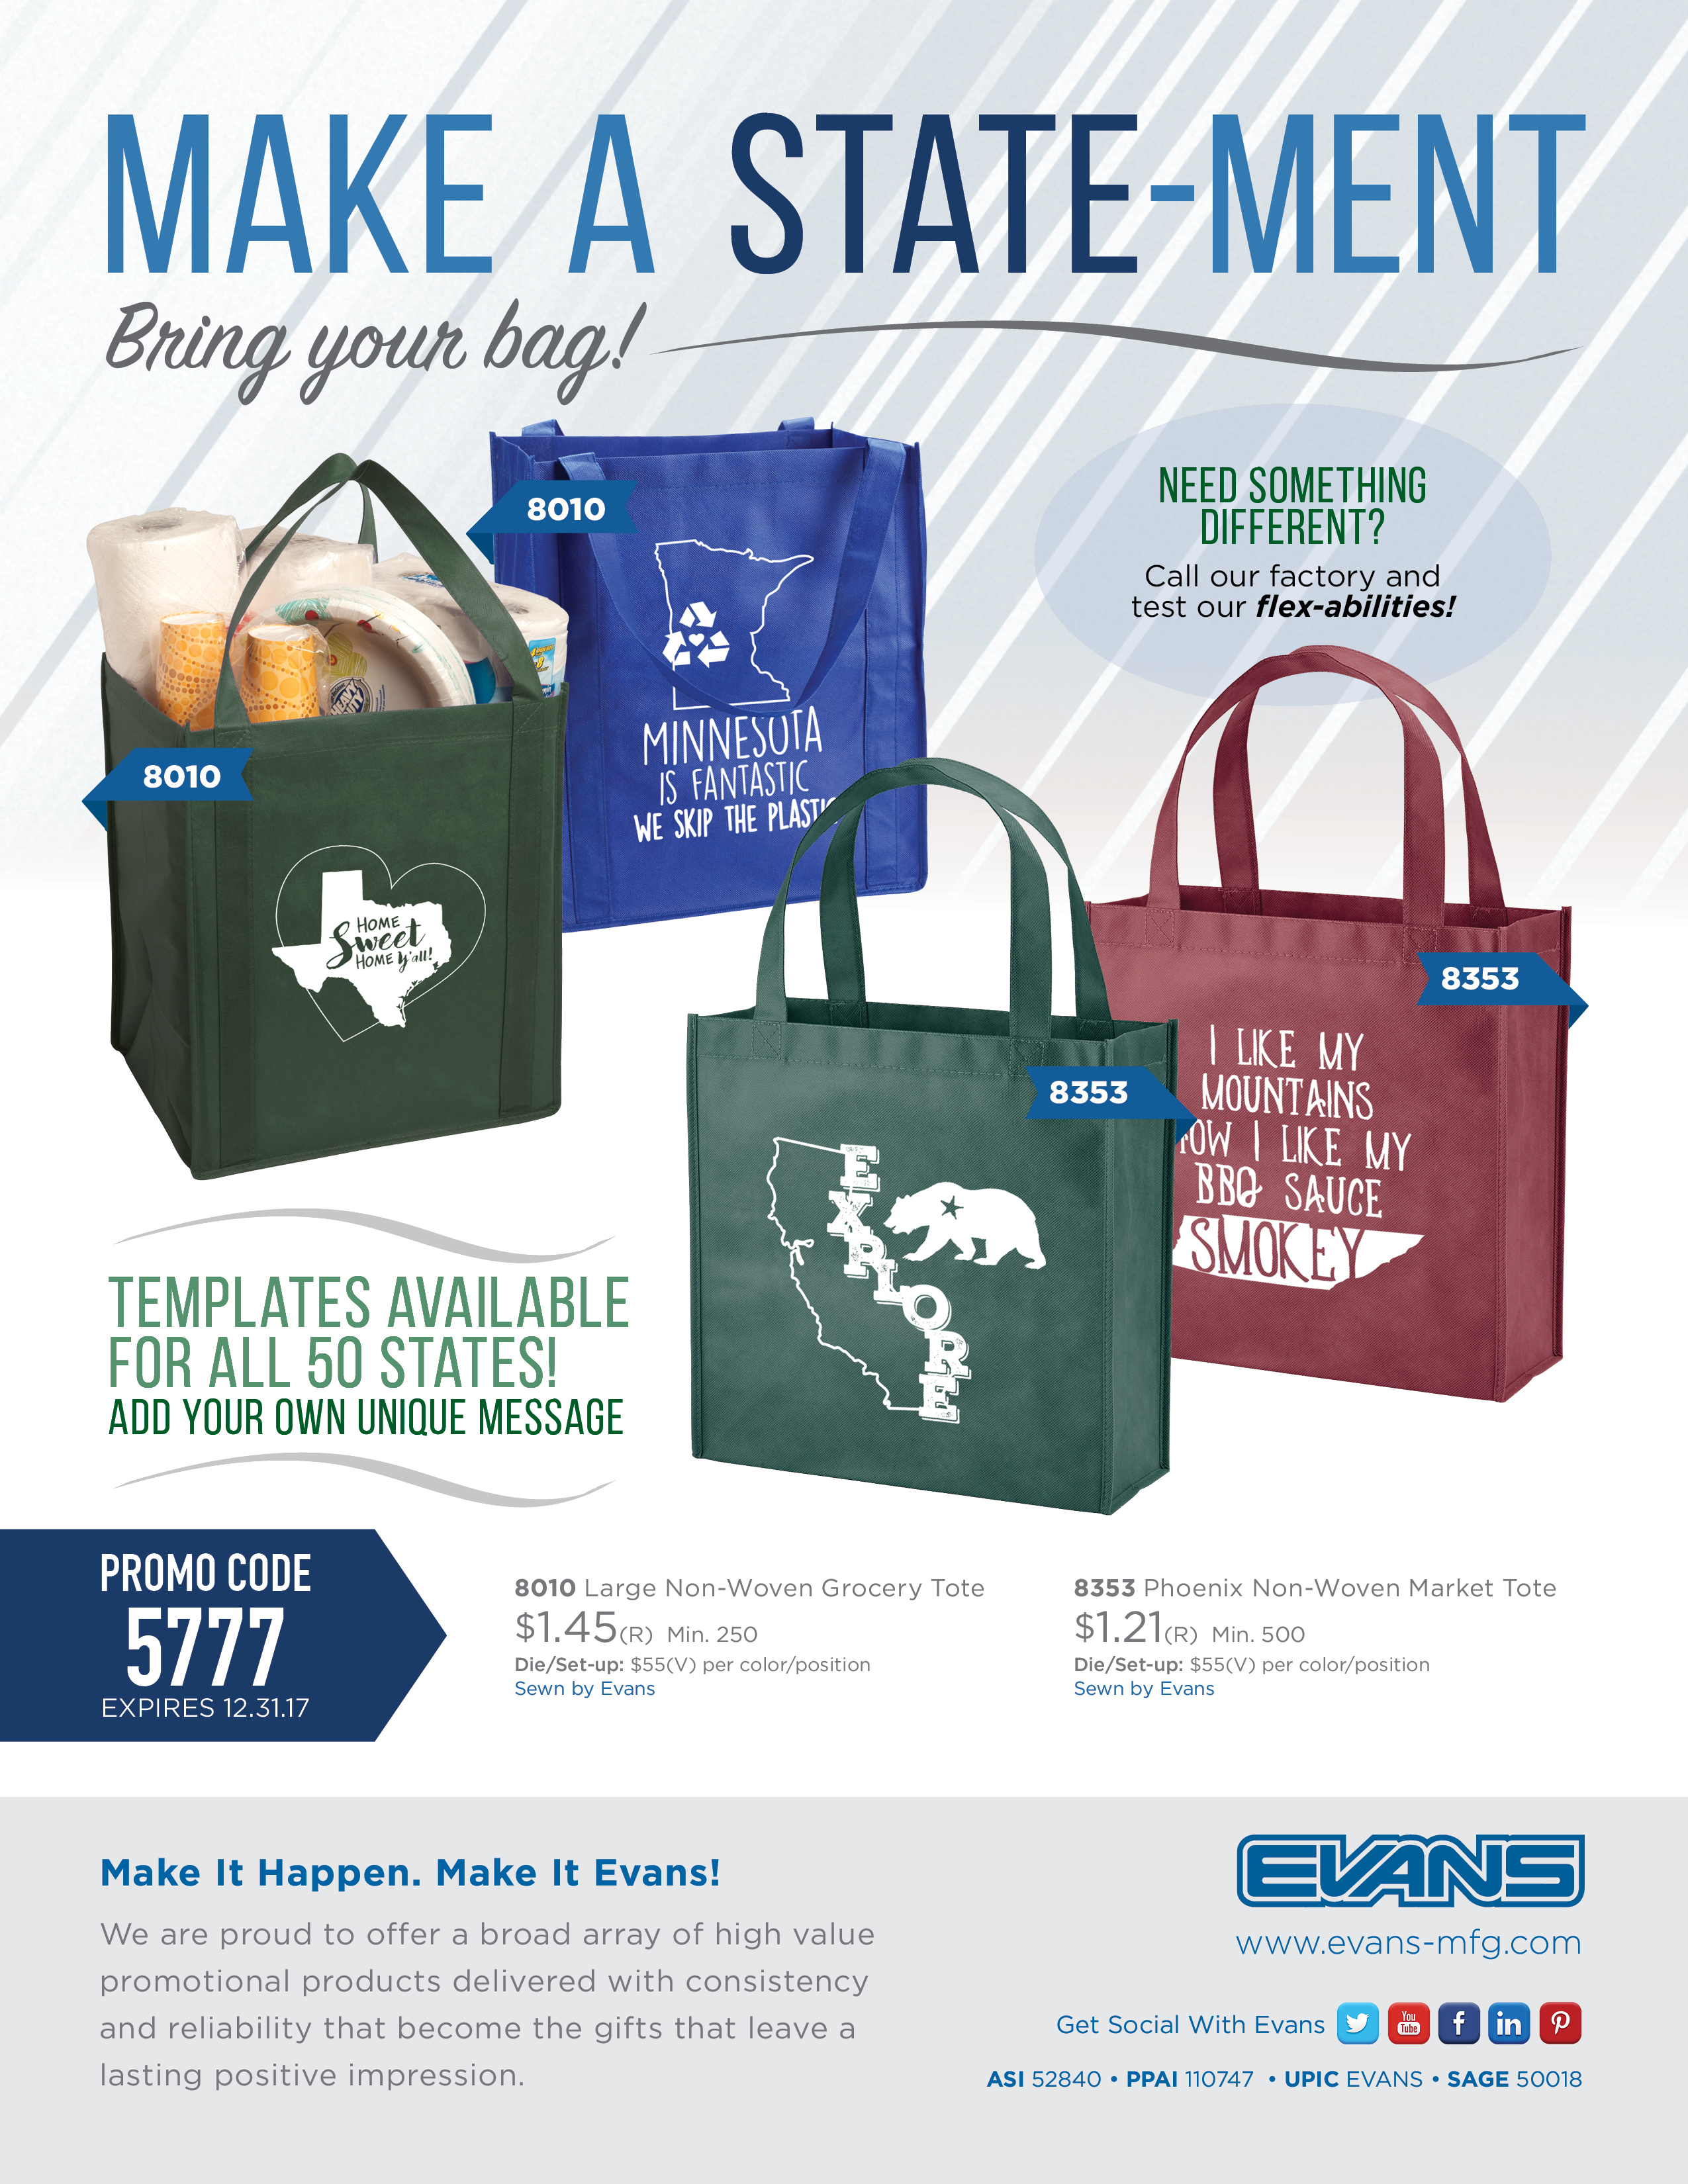 State-Ment Bag Promo